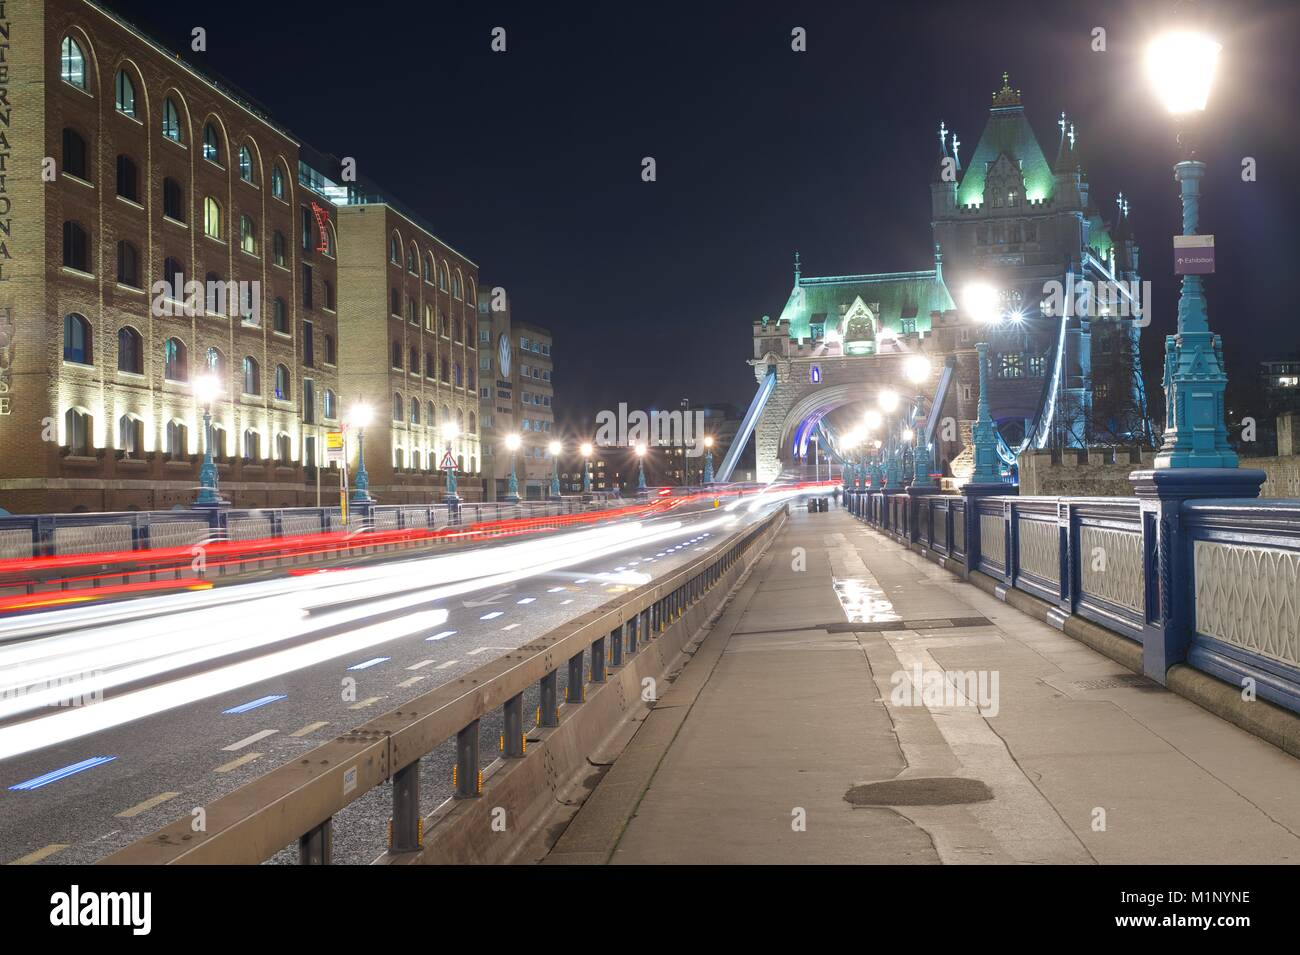 Tower Bridge, London Stockbild